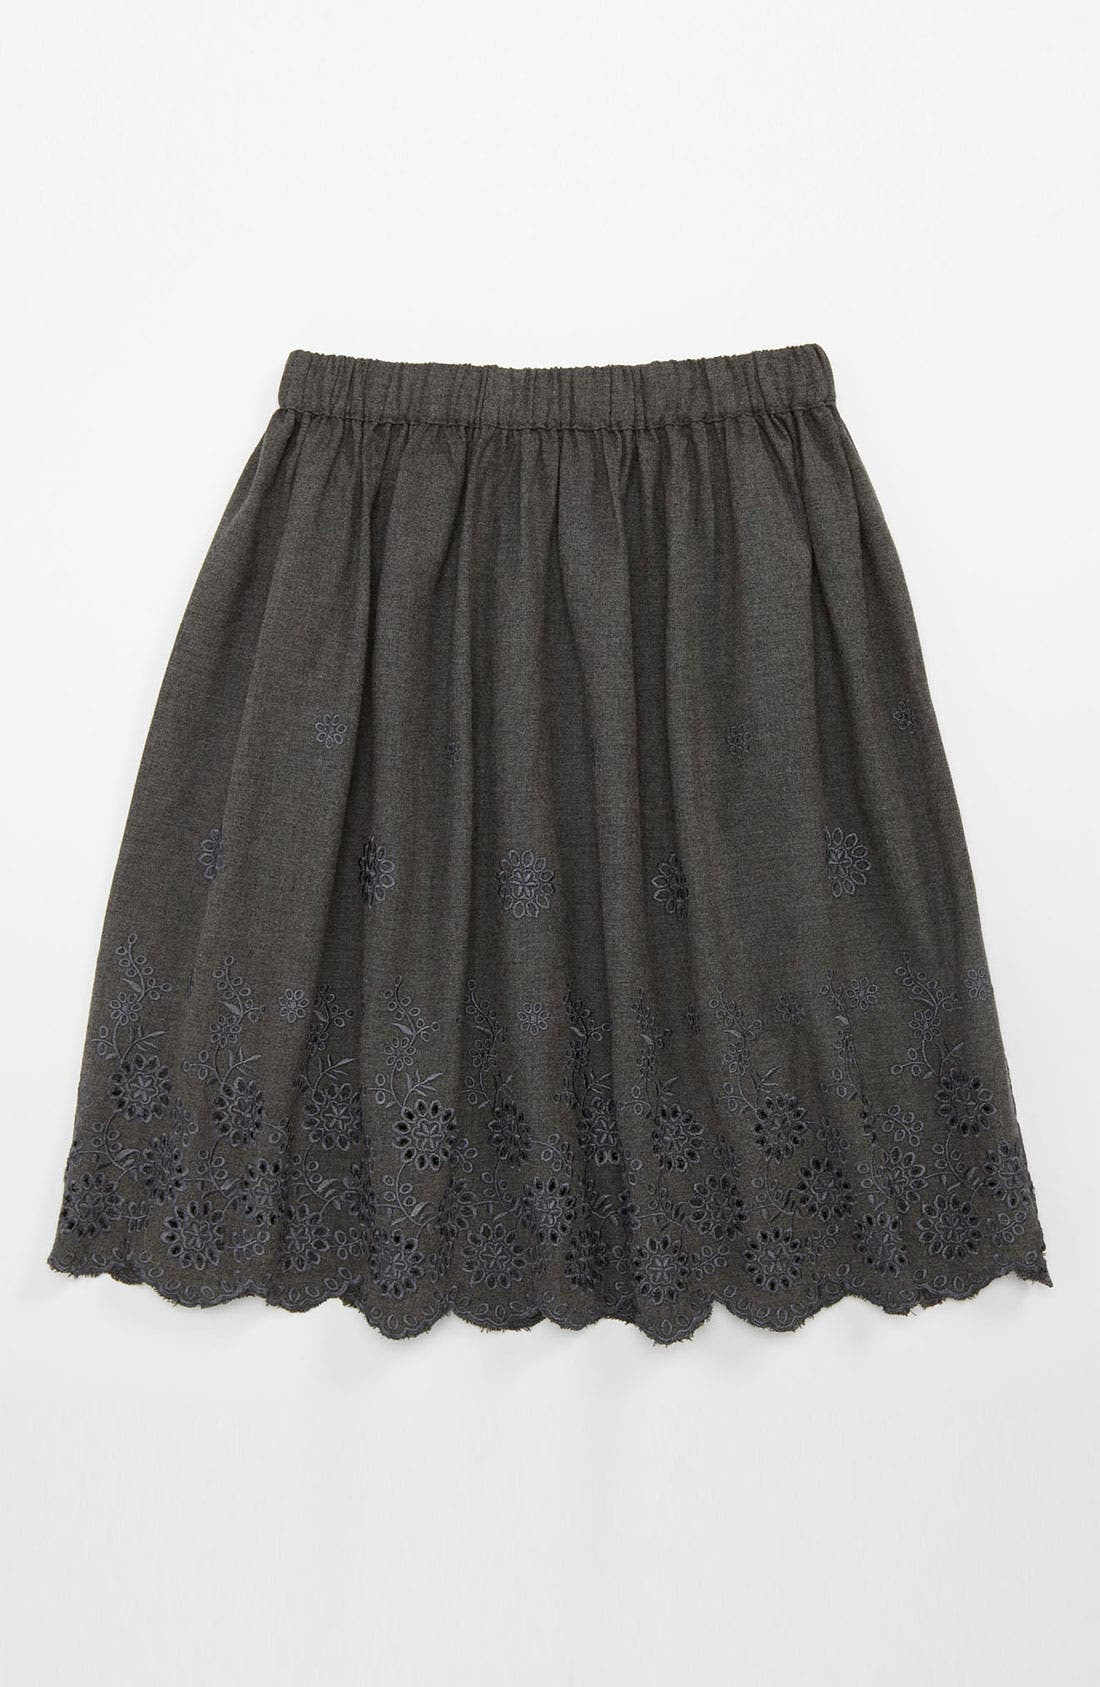 Main Image - Peek 'Harlow' Skirt (Toddler, Little Girls & Big Girls)